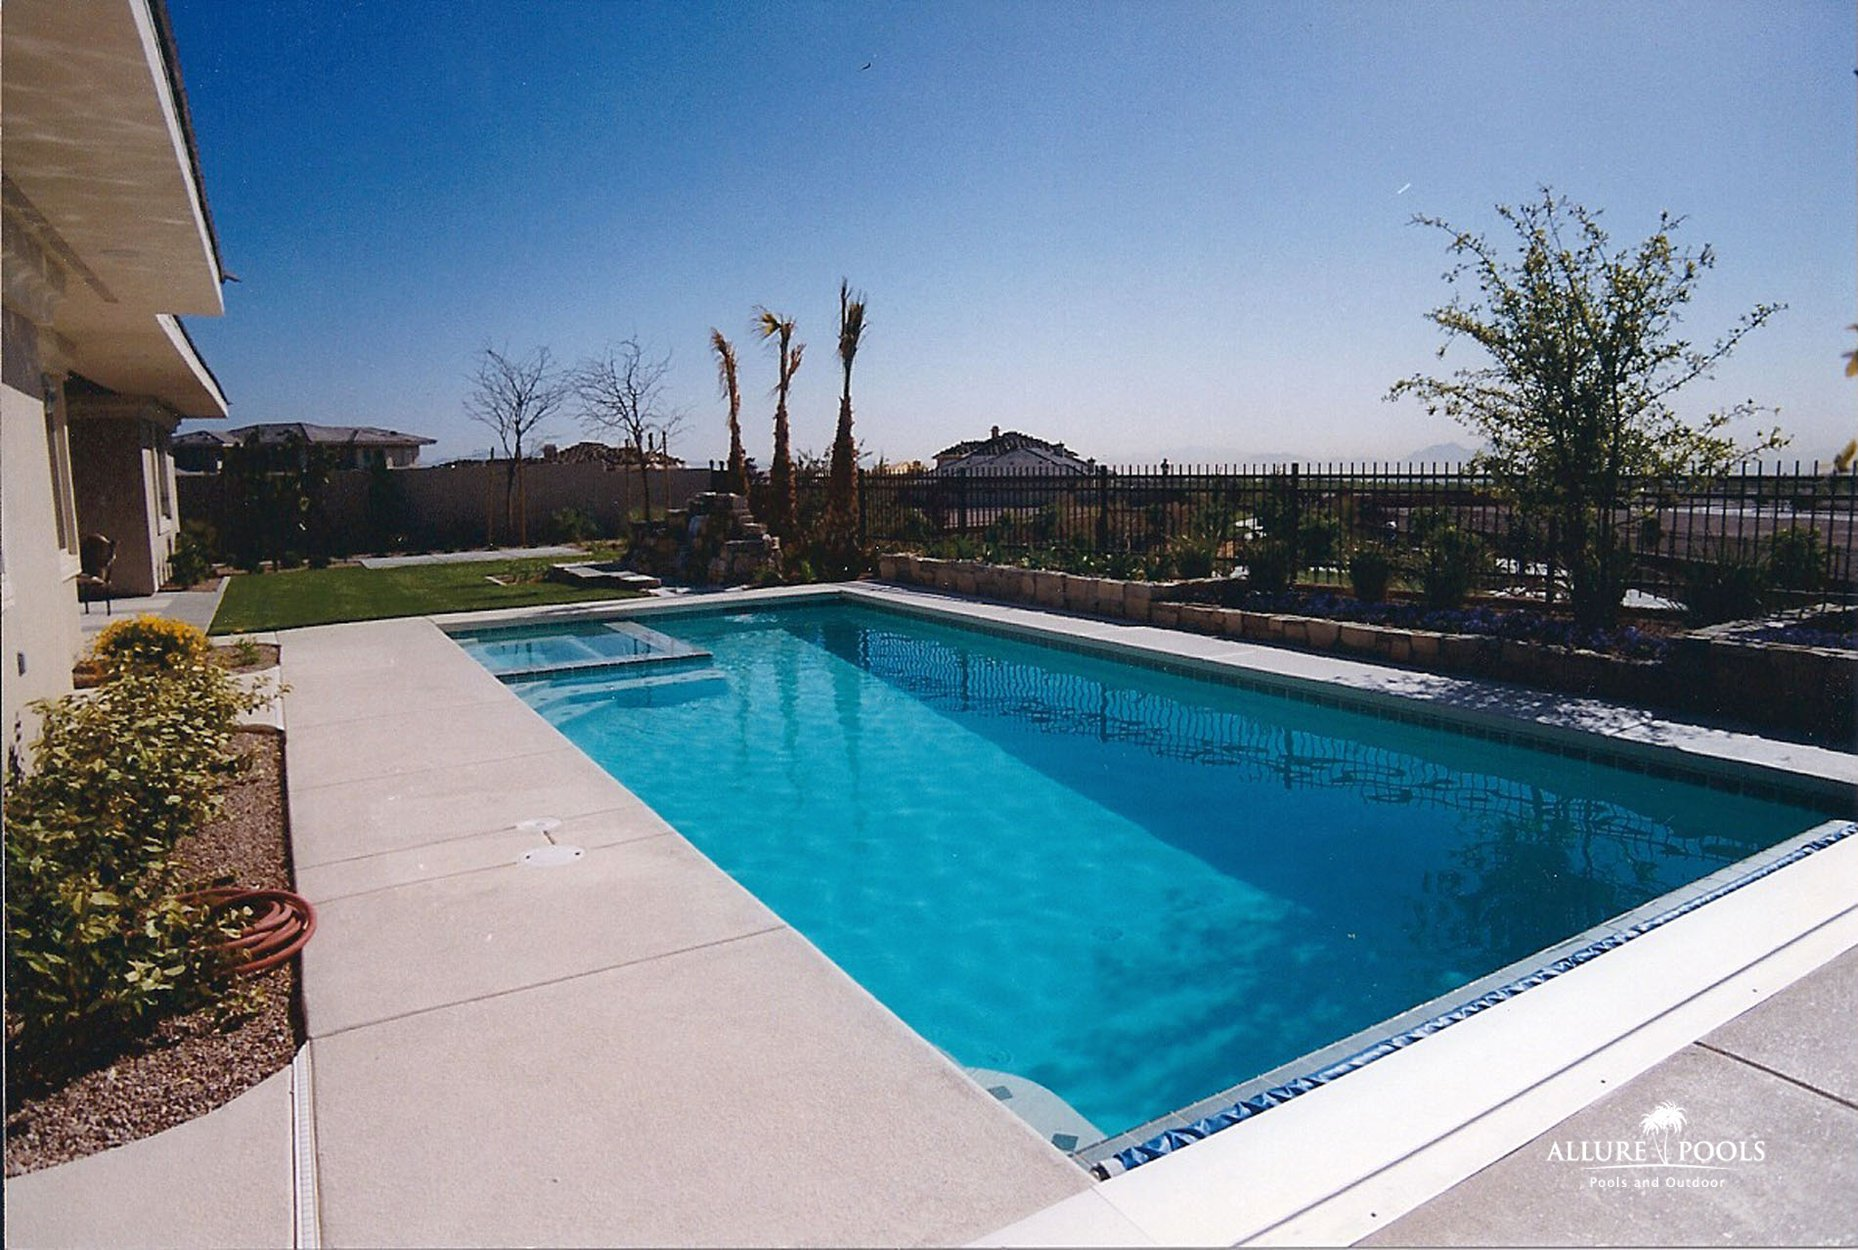 Concrete Pools : Las Vegas Swimming Pool Builders : allurepools.net